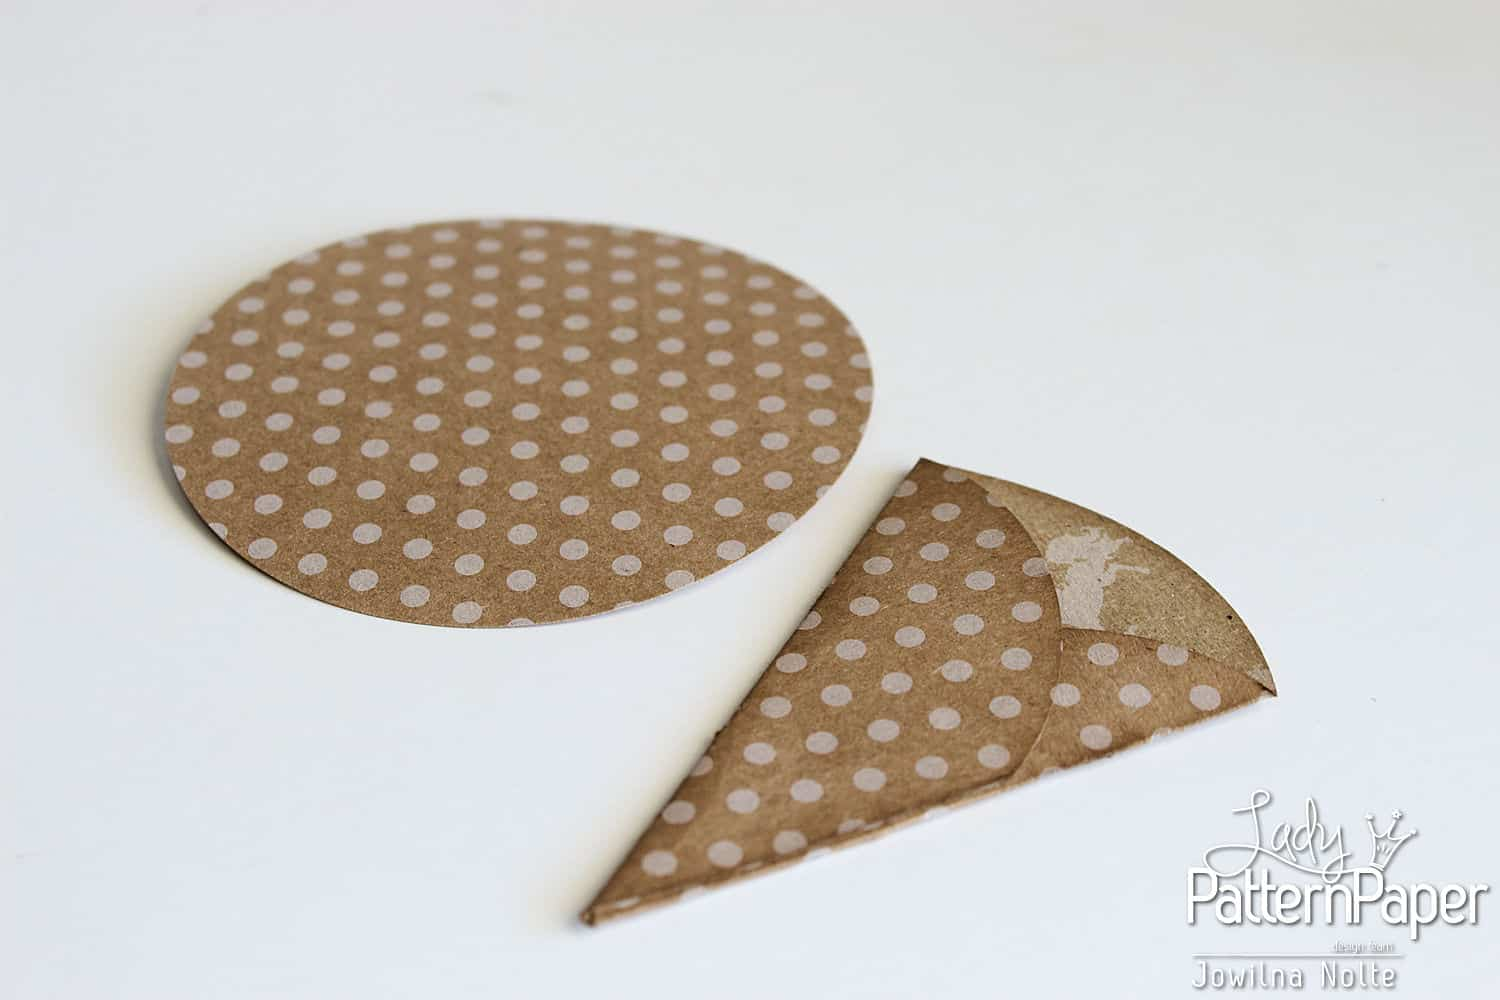 Punched Shaped Card - Step 1